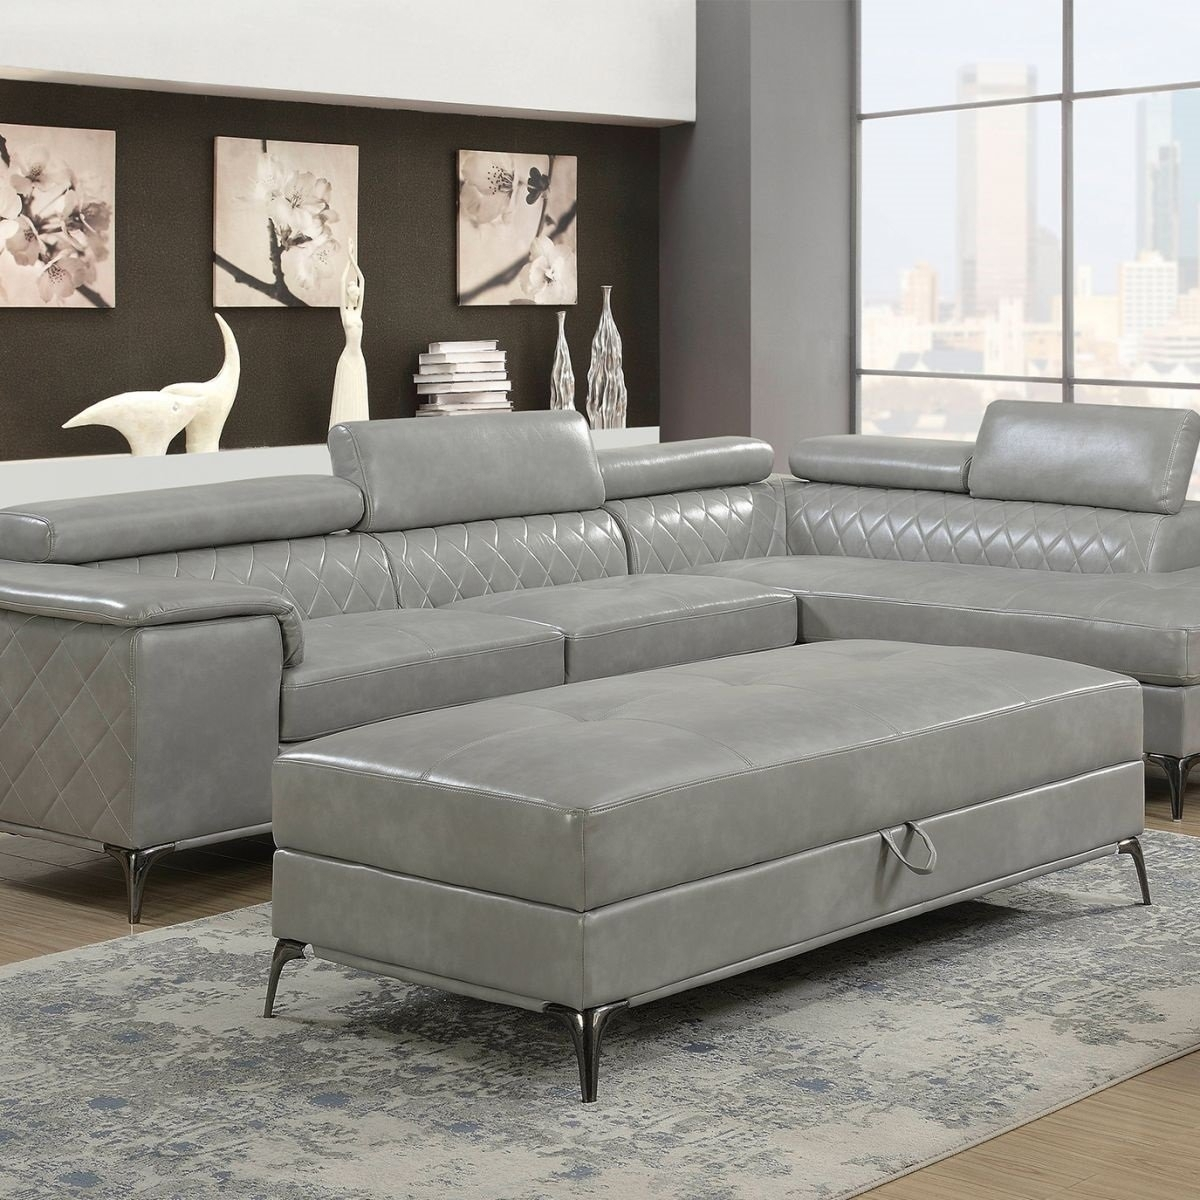 Worthington Grey 2 Pc Sectional & Ottoman | Badcock & More Inside Cosmos Grey 2 Piece Sectionals With Laf Chaise (View 20 of 25)